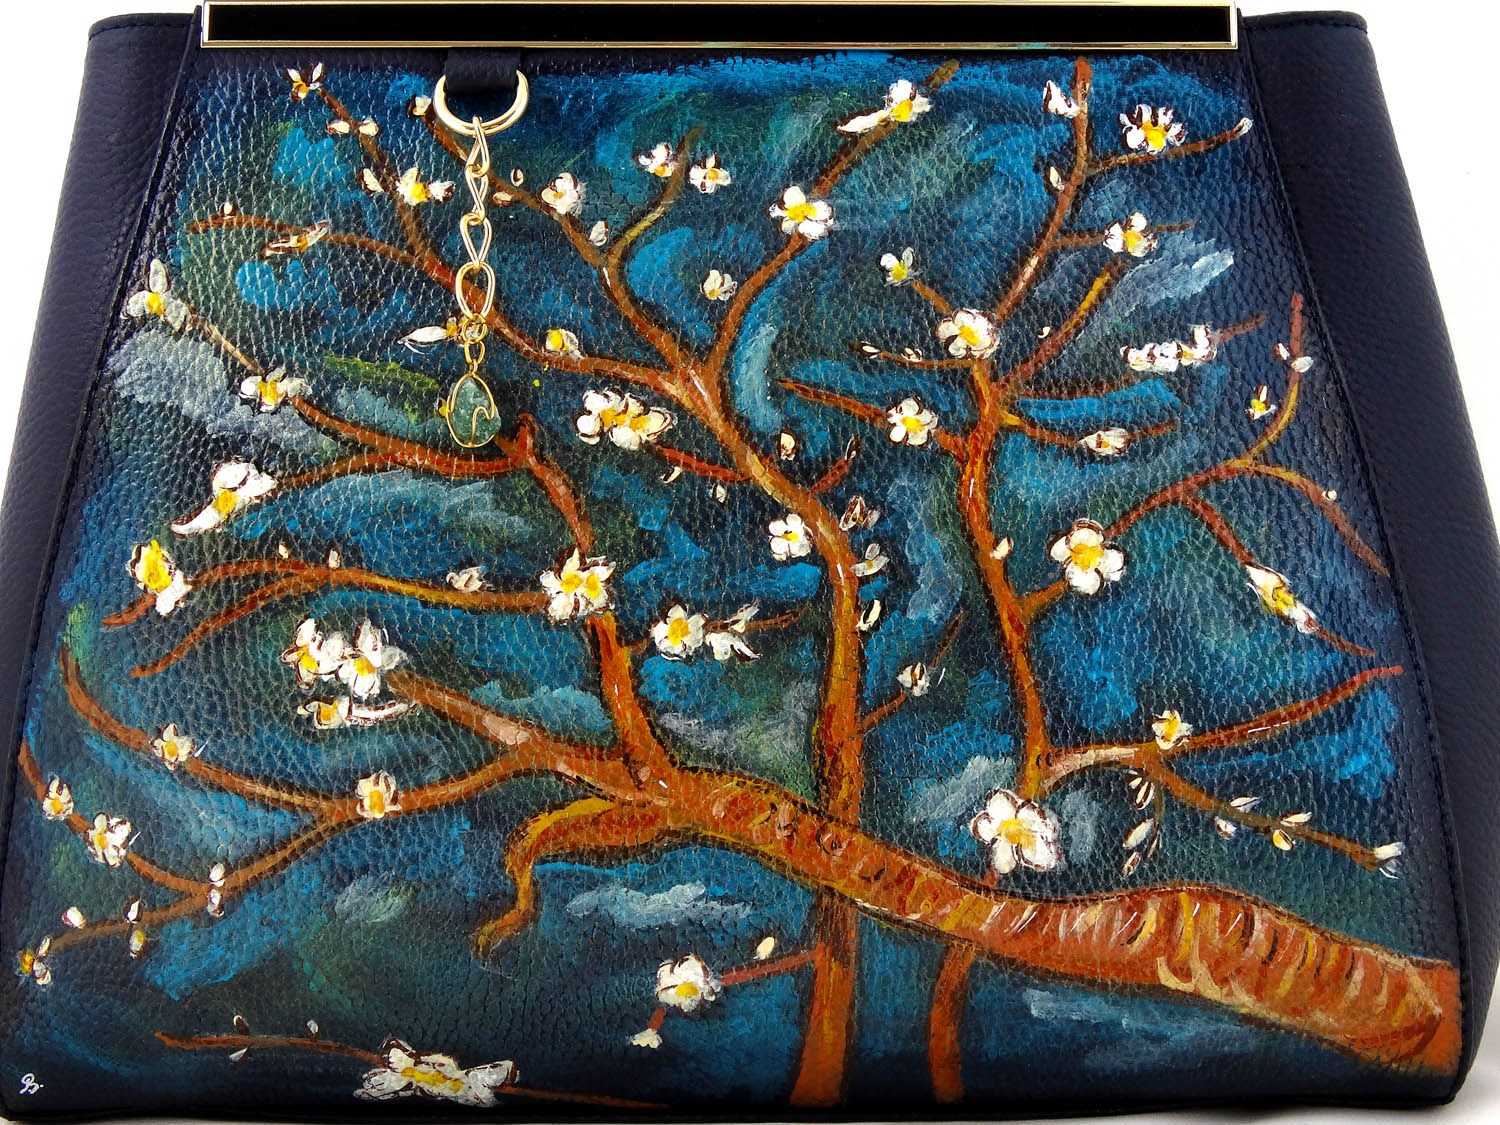 Hand painted bag - The almond by Van Gogh